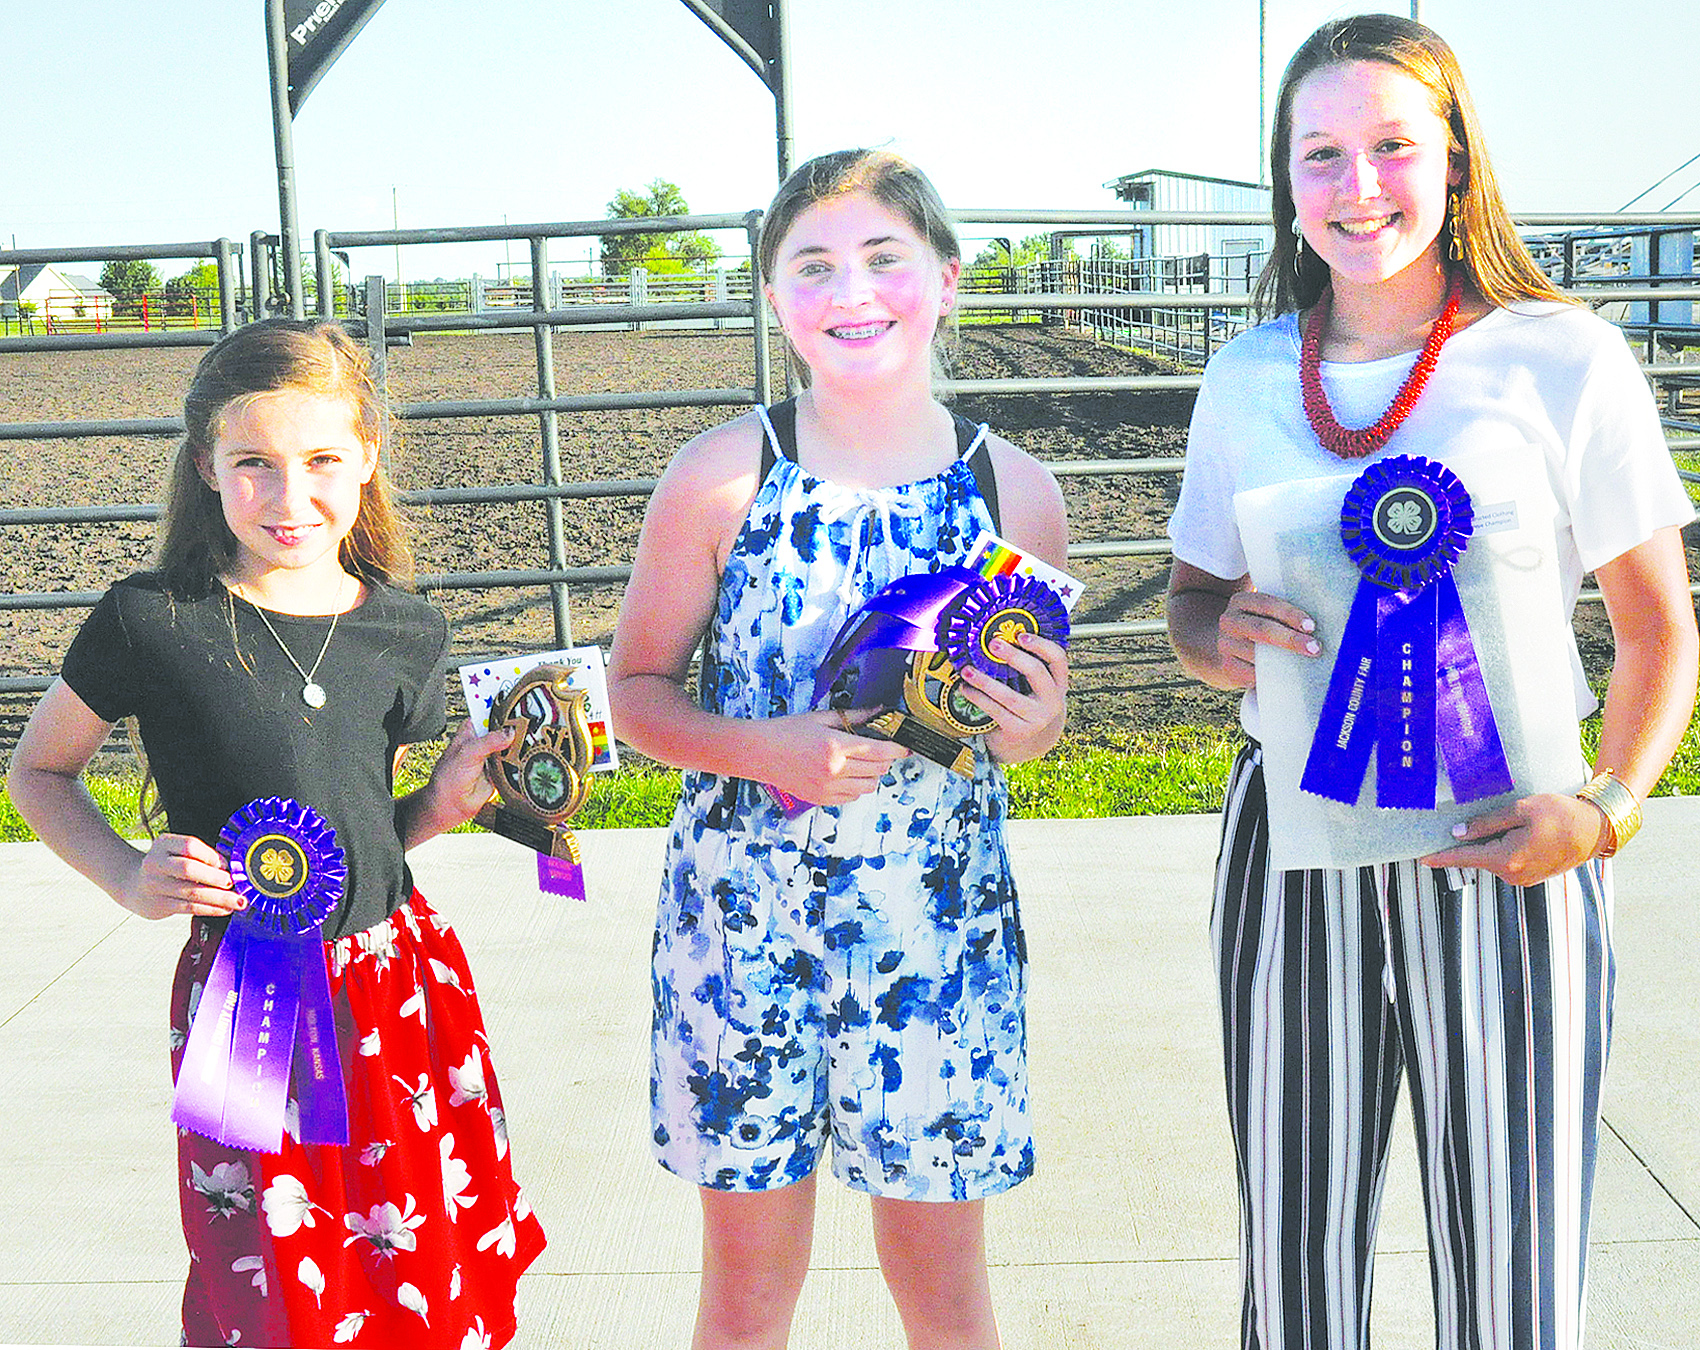 Constructed garment champions at the Jackson County 4-H Fashion Revue are shown above and include (from left) Alaina Bausch (junior champion), Kennedy Smith (intermediate champion) and Karlie Albright (senior champion). (Photo by Ali Holcomb)